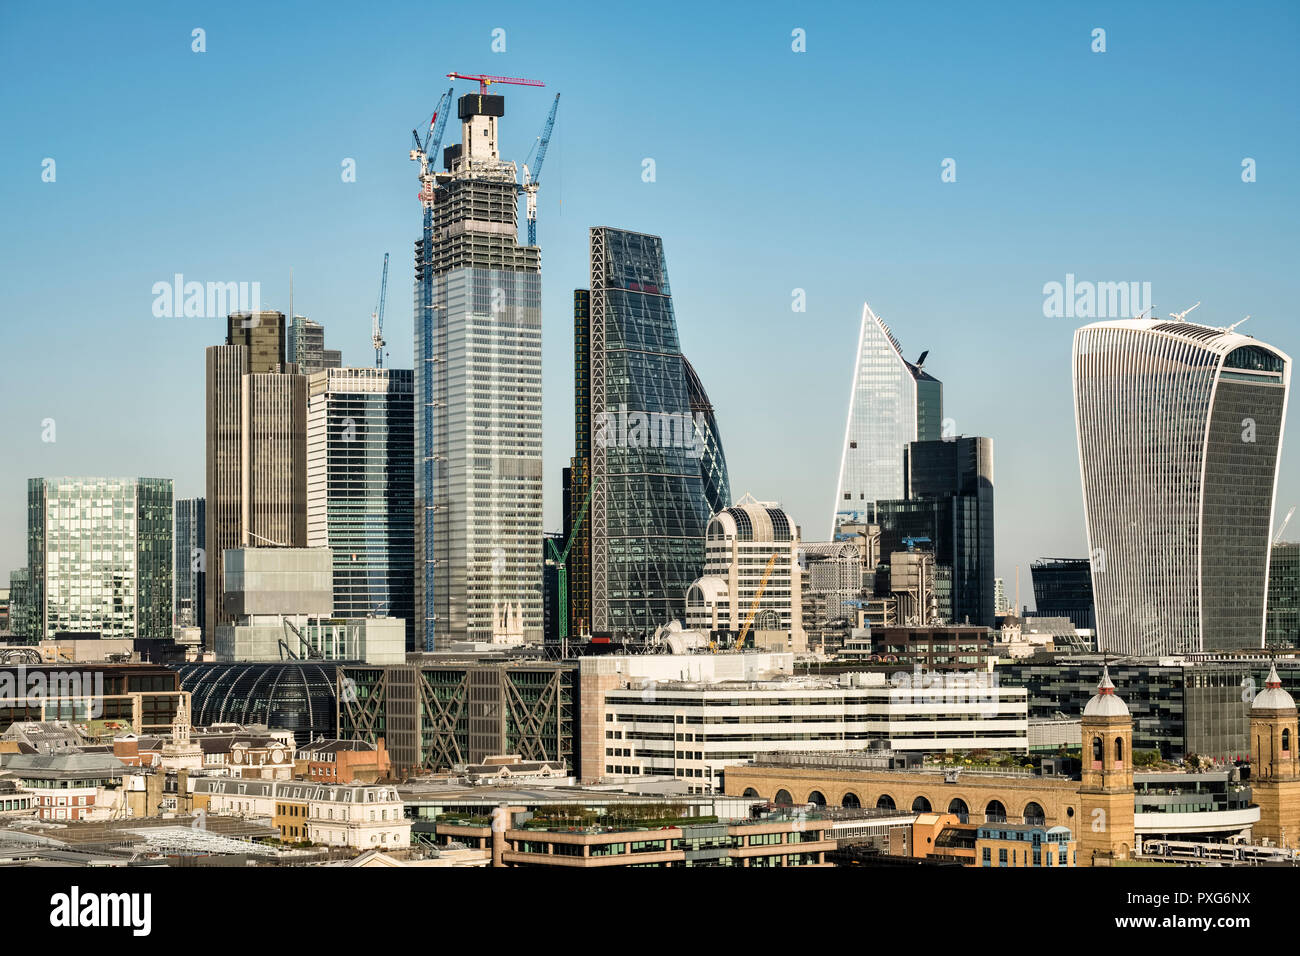 London, UK. View from the top floor of the Tate Modern gallery on Bankside, showing high-rise office buildings in the financial district of the City - Stock Image